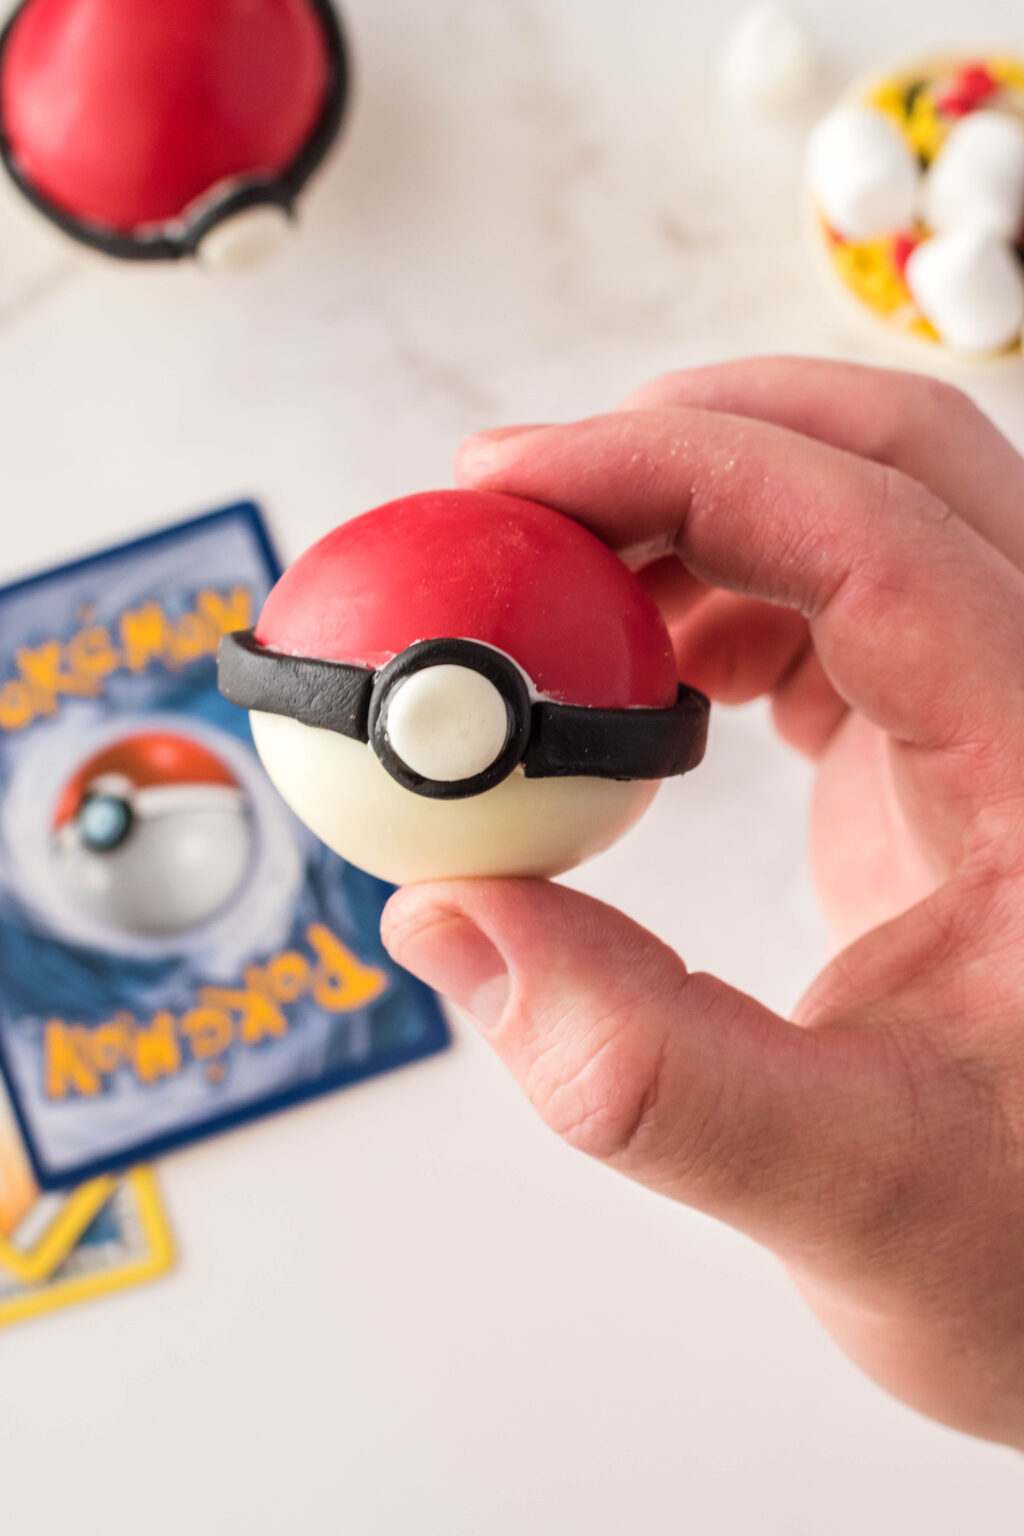 poke ball hot chocolate bomb being held with fingers